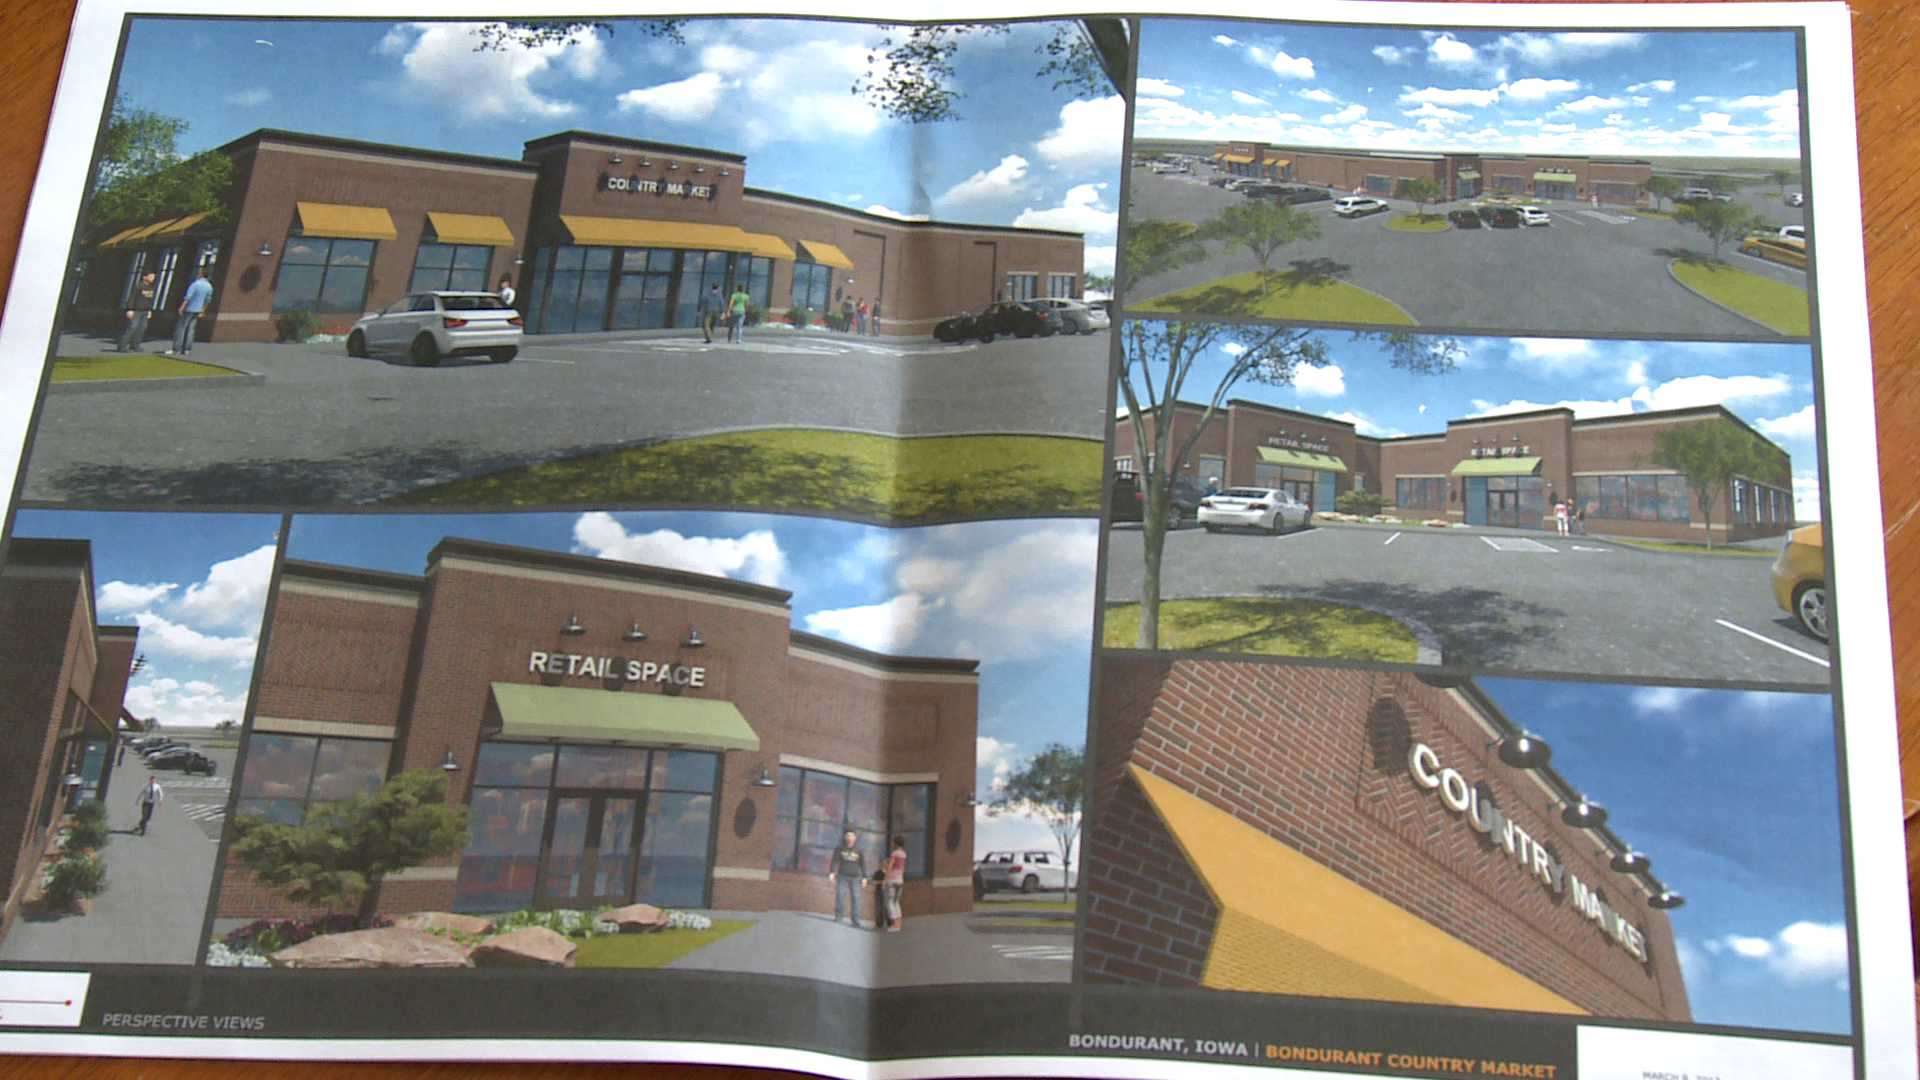 The plans for what the store will look like